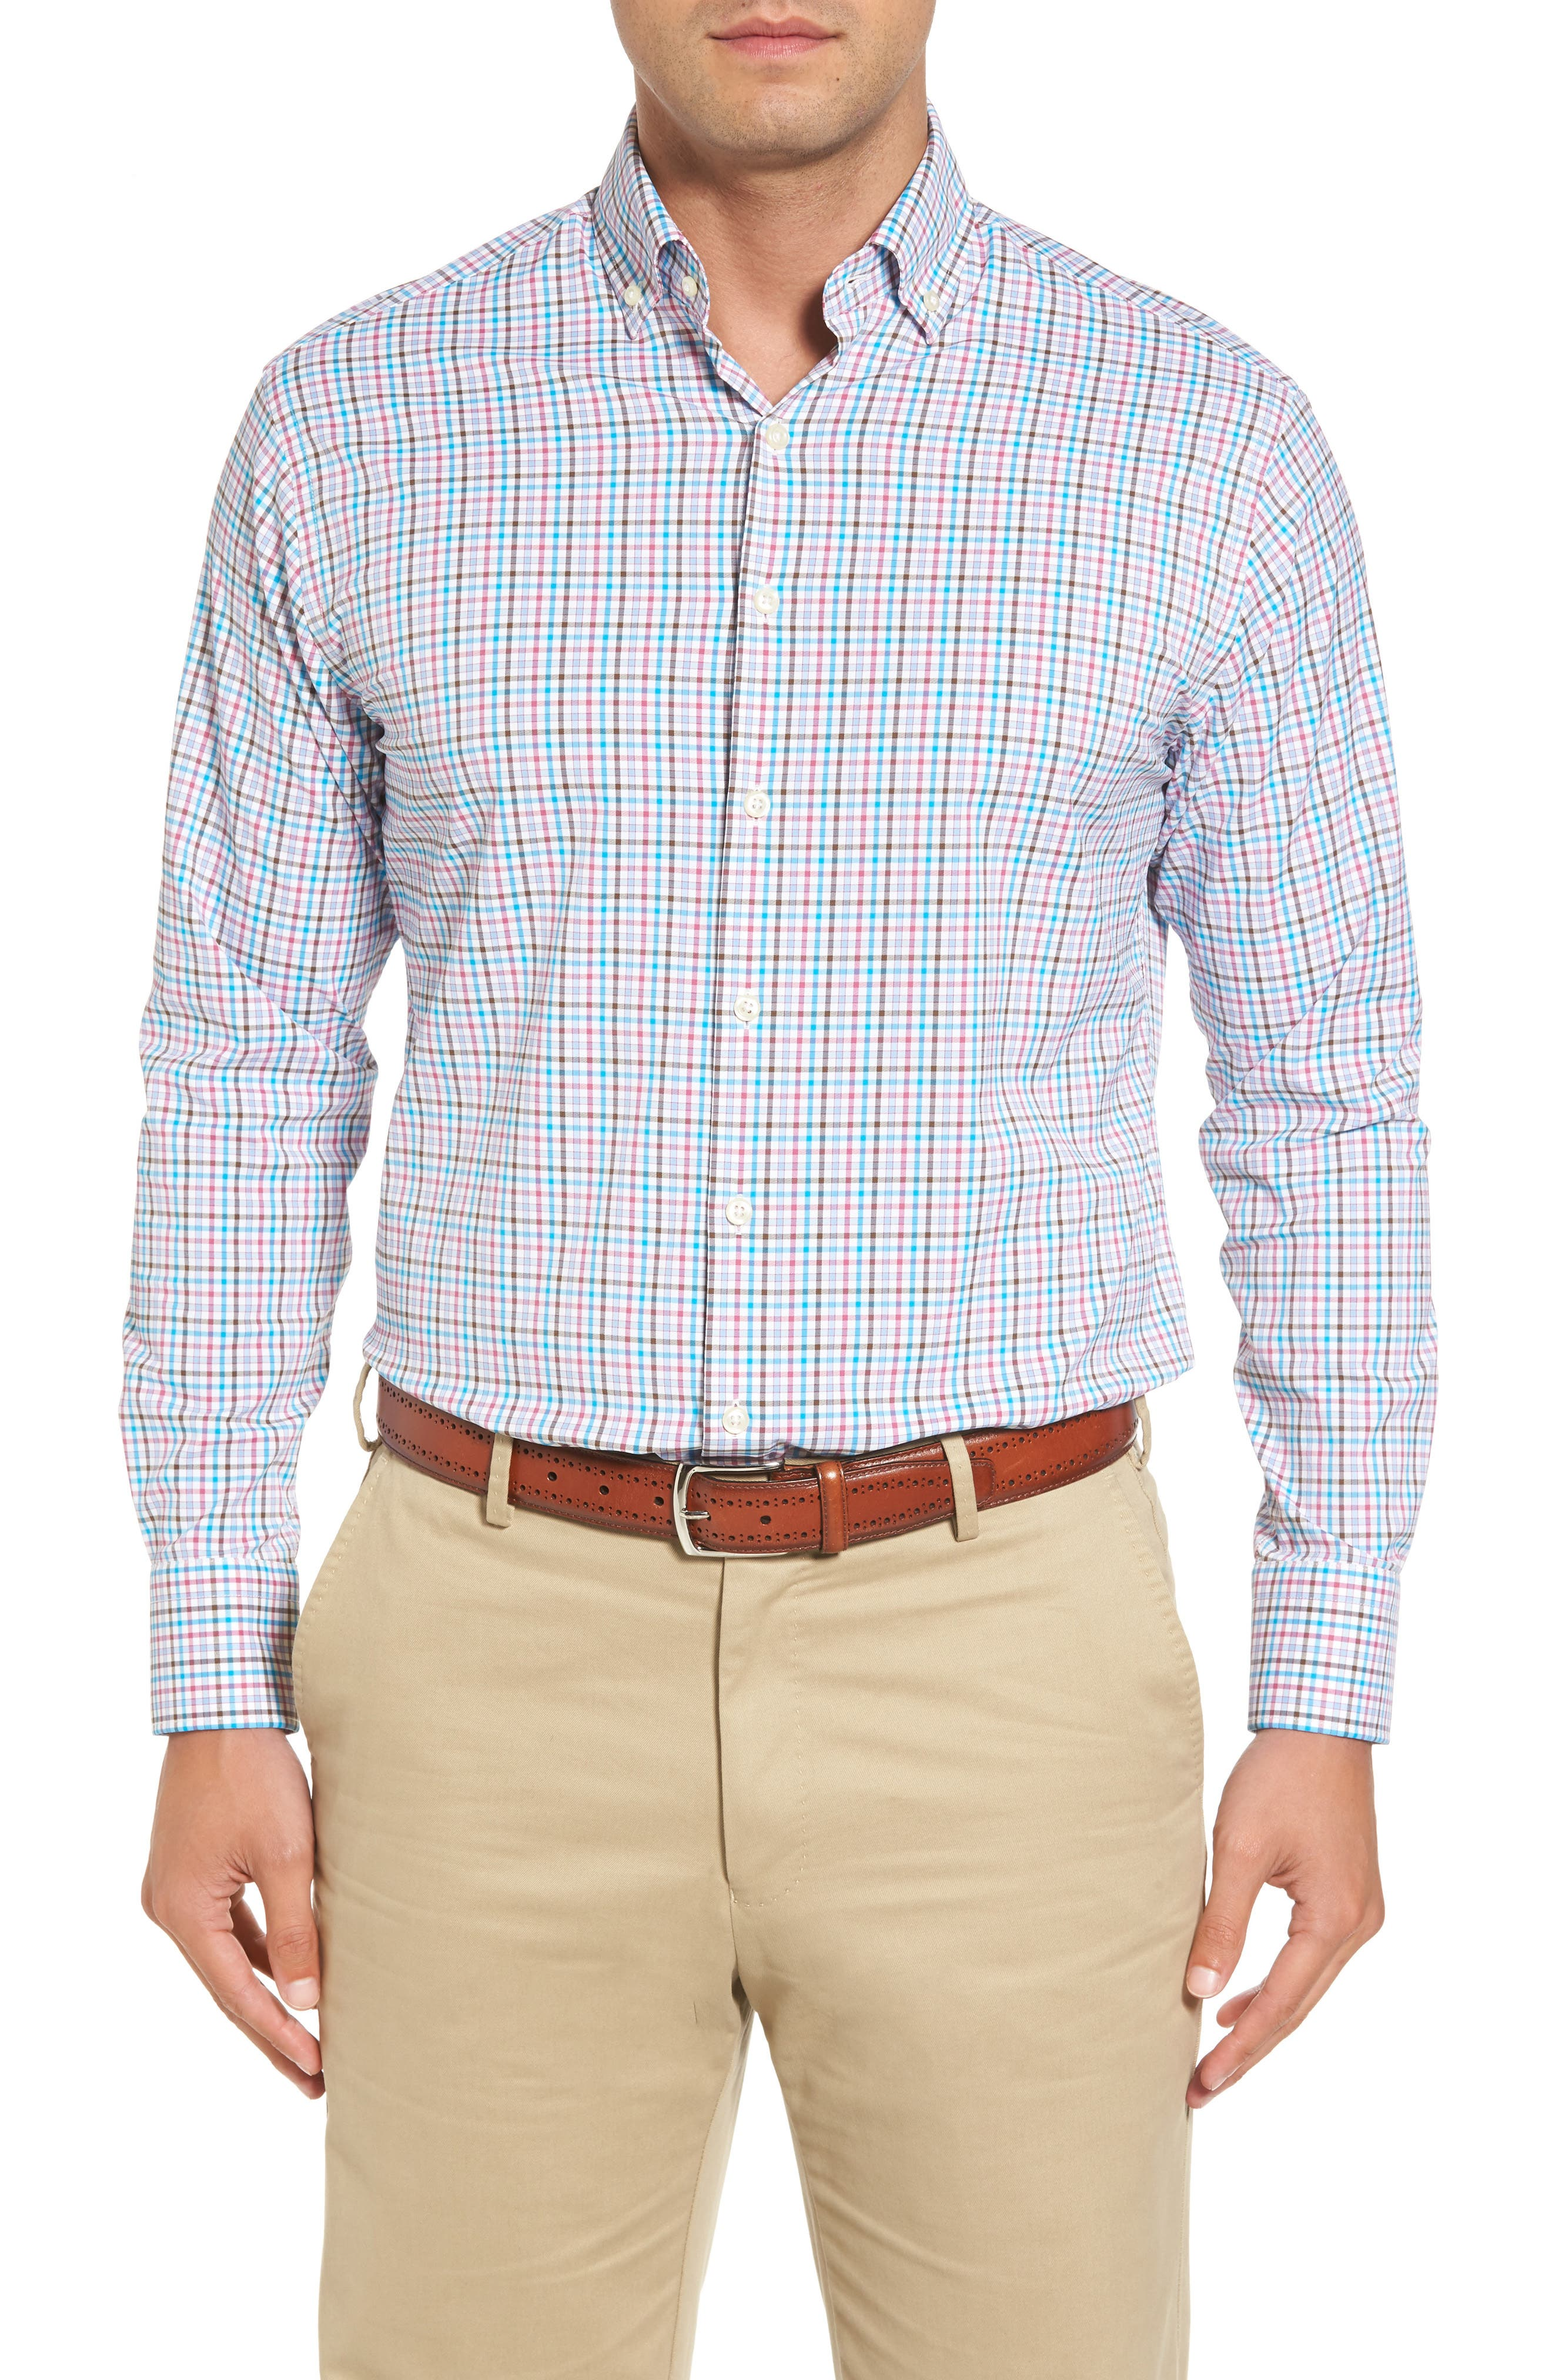 Post Regular Fit Check Performance Sport Shirt,                         Main,                         color, 100